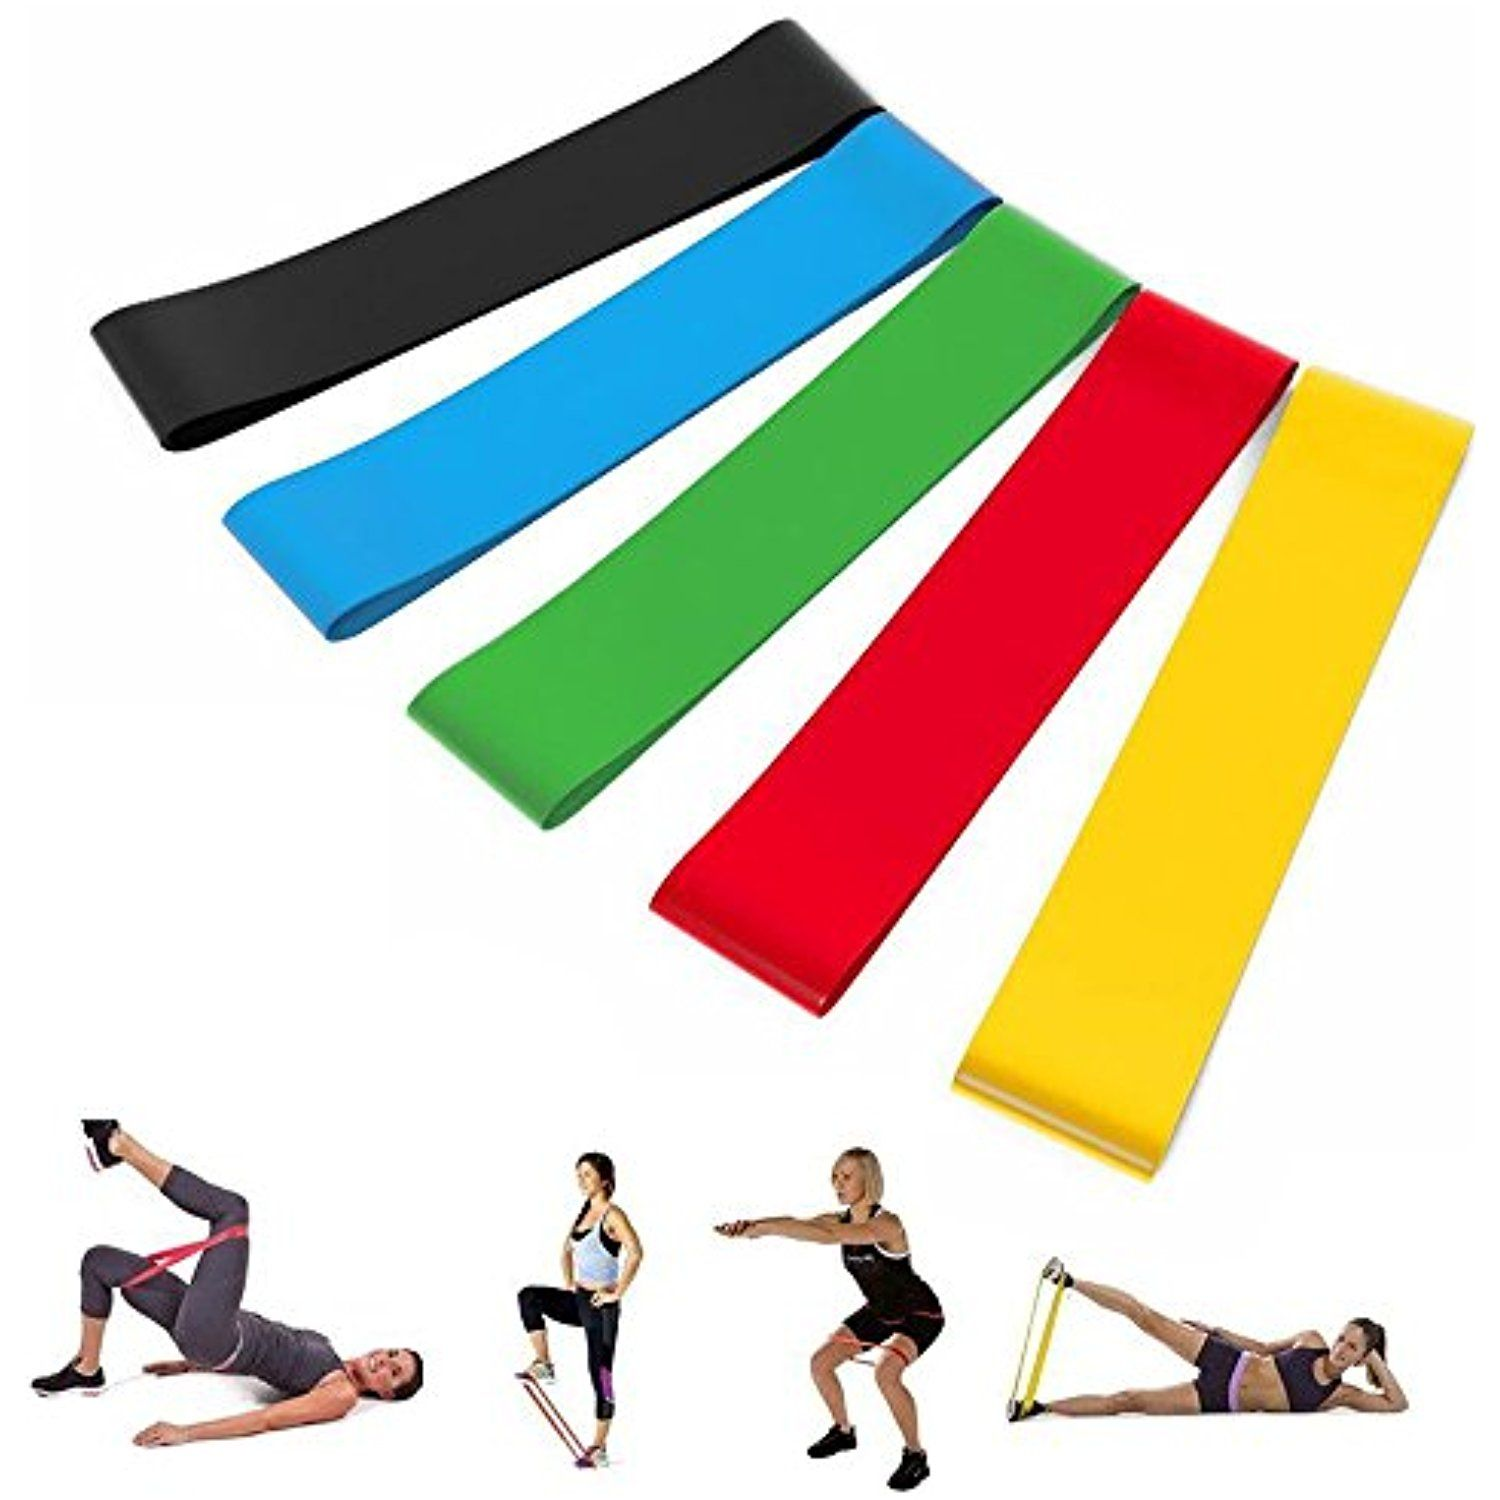 Stretching clipart light exercise. Loop resistance band mini